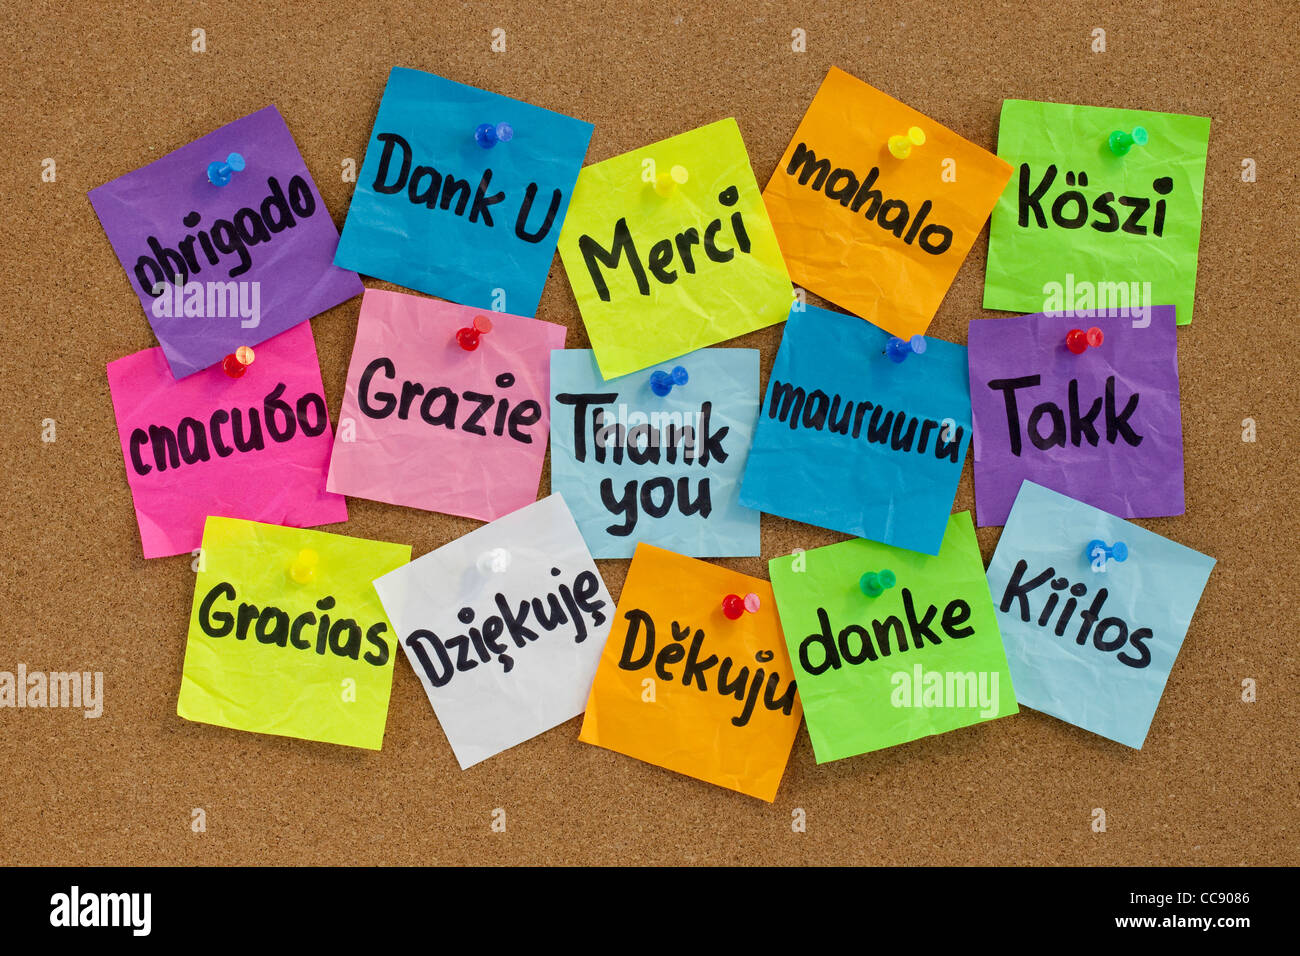 Thank you in sixteen languages - colorful sticky notes with handwriting on cork bulletin board - Stock Image